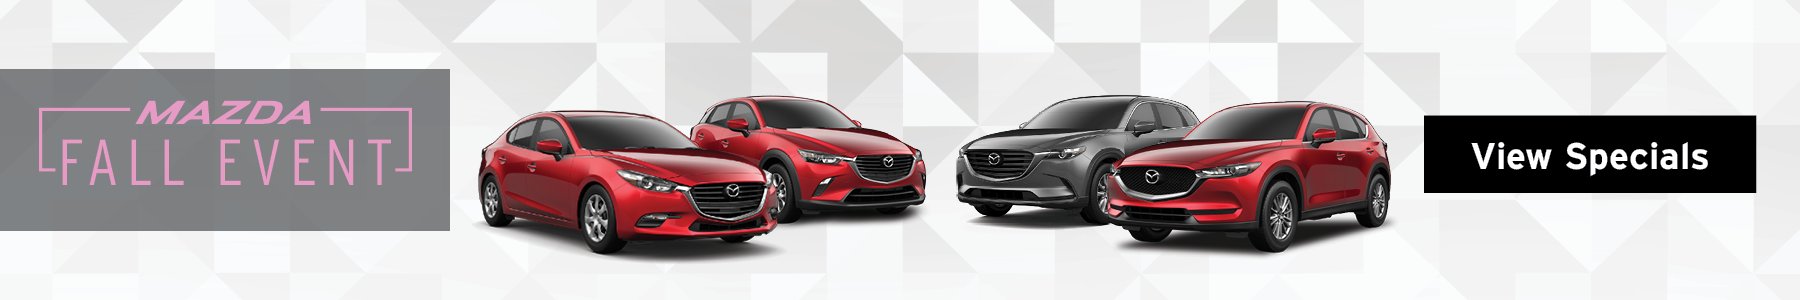 Mazda Fall Event. View Specials.